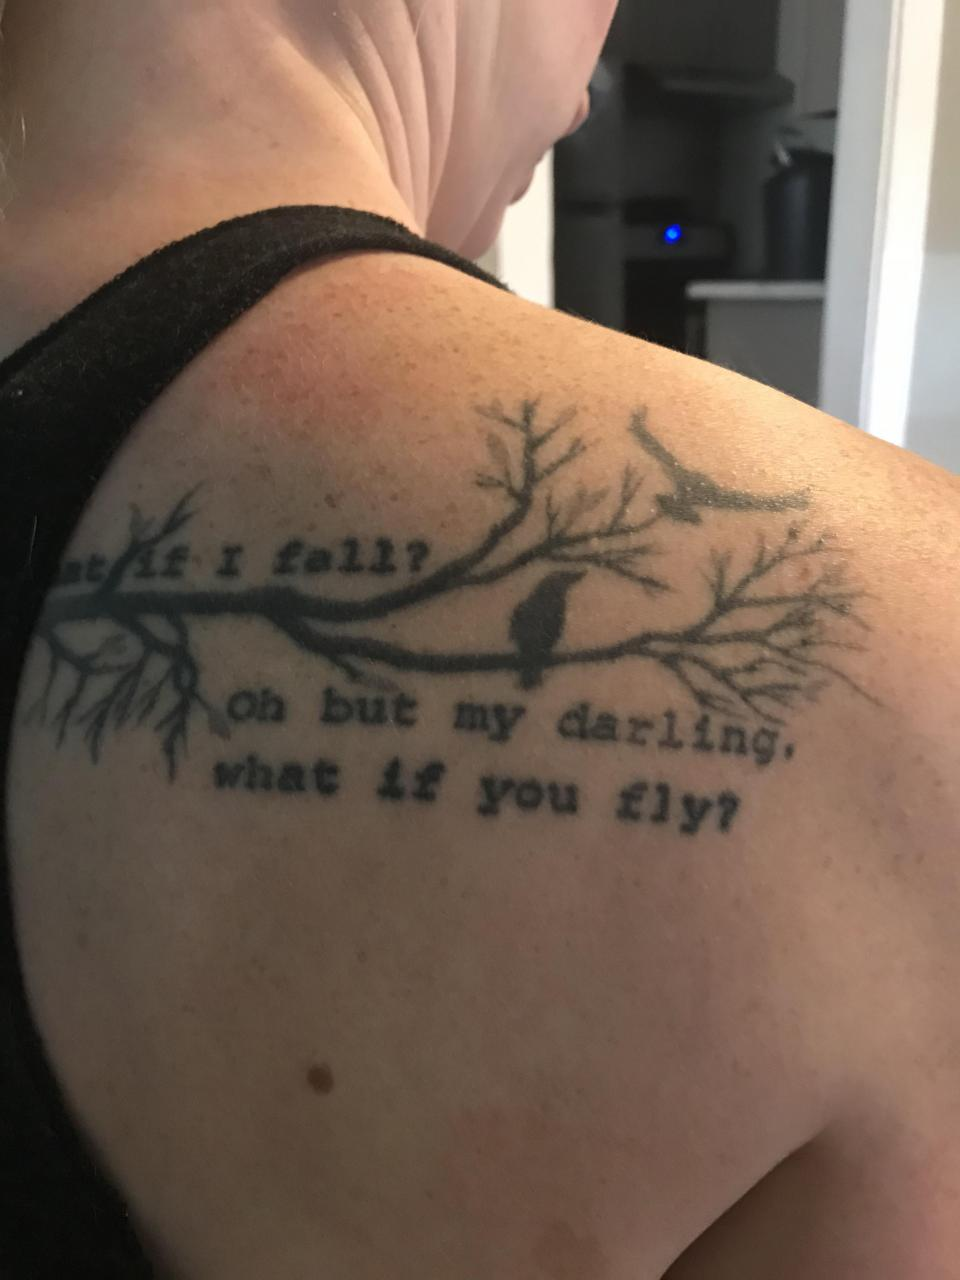 I was thinking about adding to this by making the branches extend onto my shoulder. I would just like to add to it in some way. Any advice or insight if this is even possible?